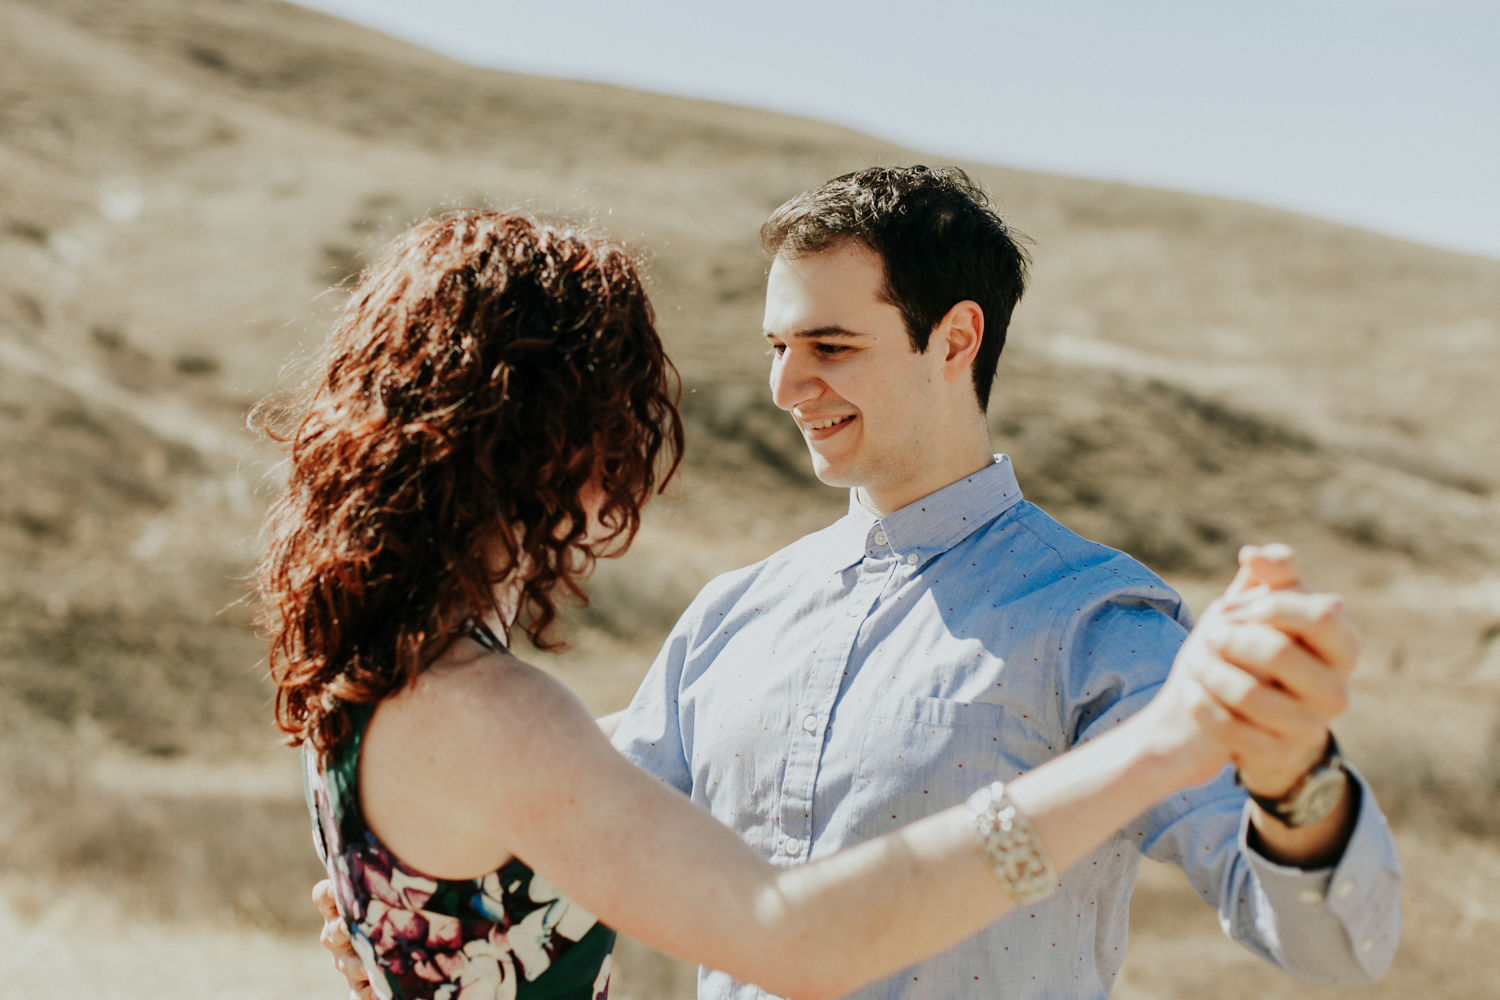 lethbridge-photographer-love-and-be-loved-photography-jodie-adam-coulee-hillside-engagement-photo-image-picture-37.jpg